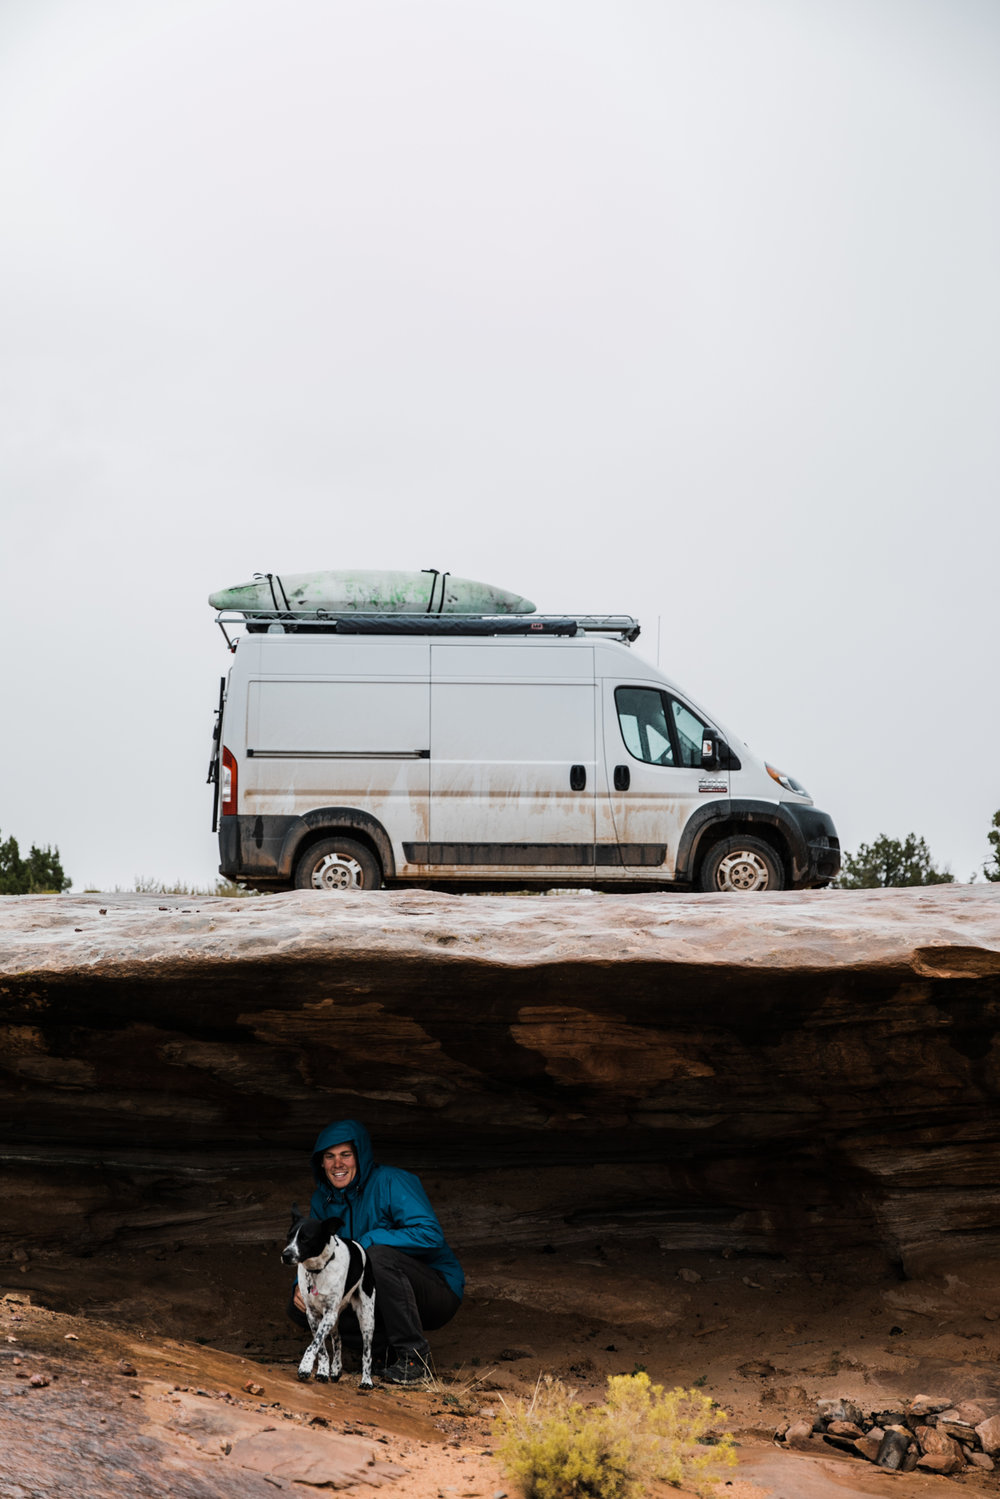 rainy day in moab utah | utah and california adventure elopement photographers | the hearnes adventure photography | www.thehearnes.com